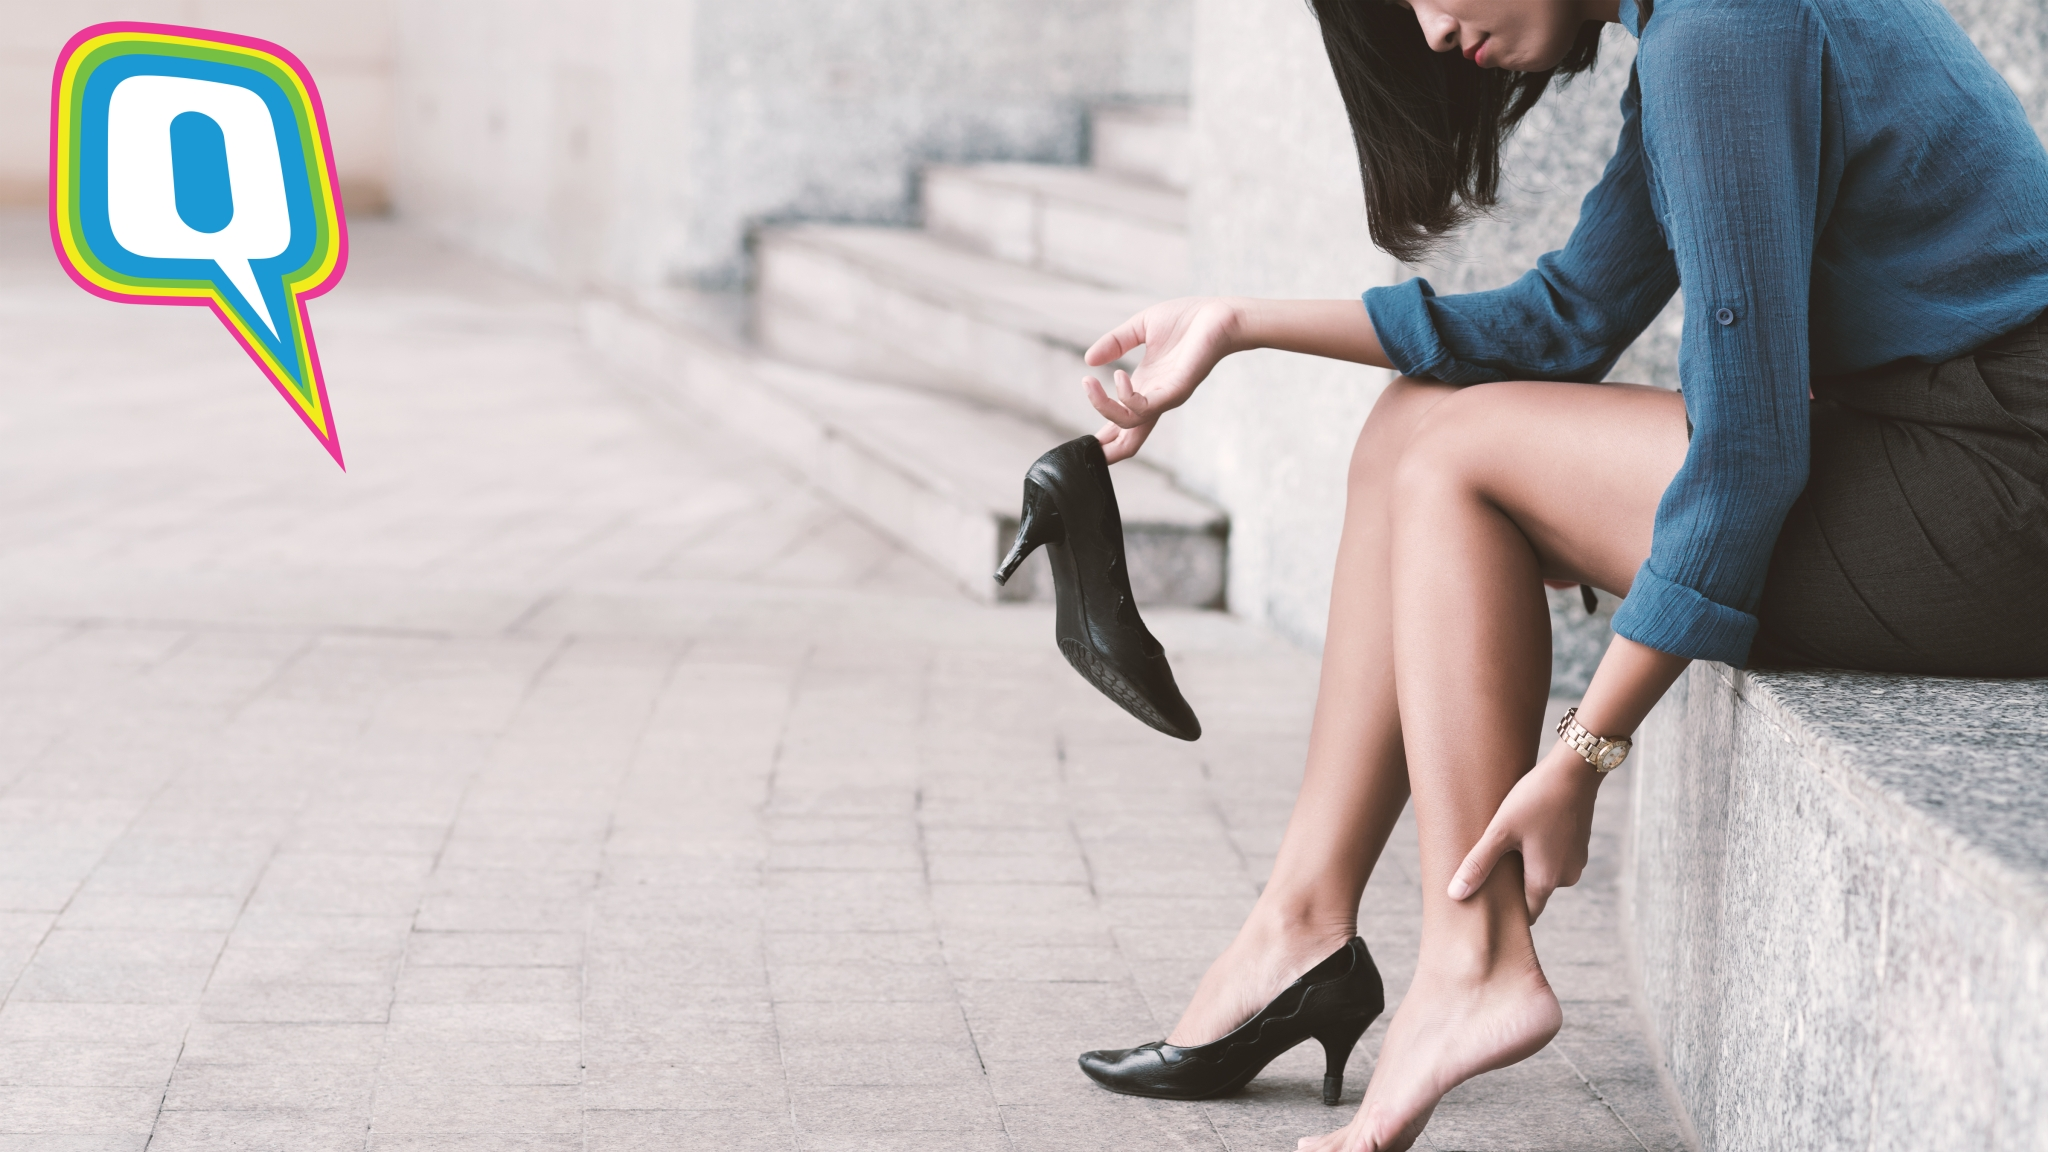 Japanese Women Say #KuToo To Protest Against Wearing Heels to Work